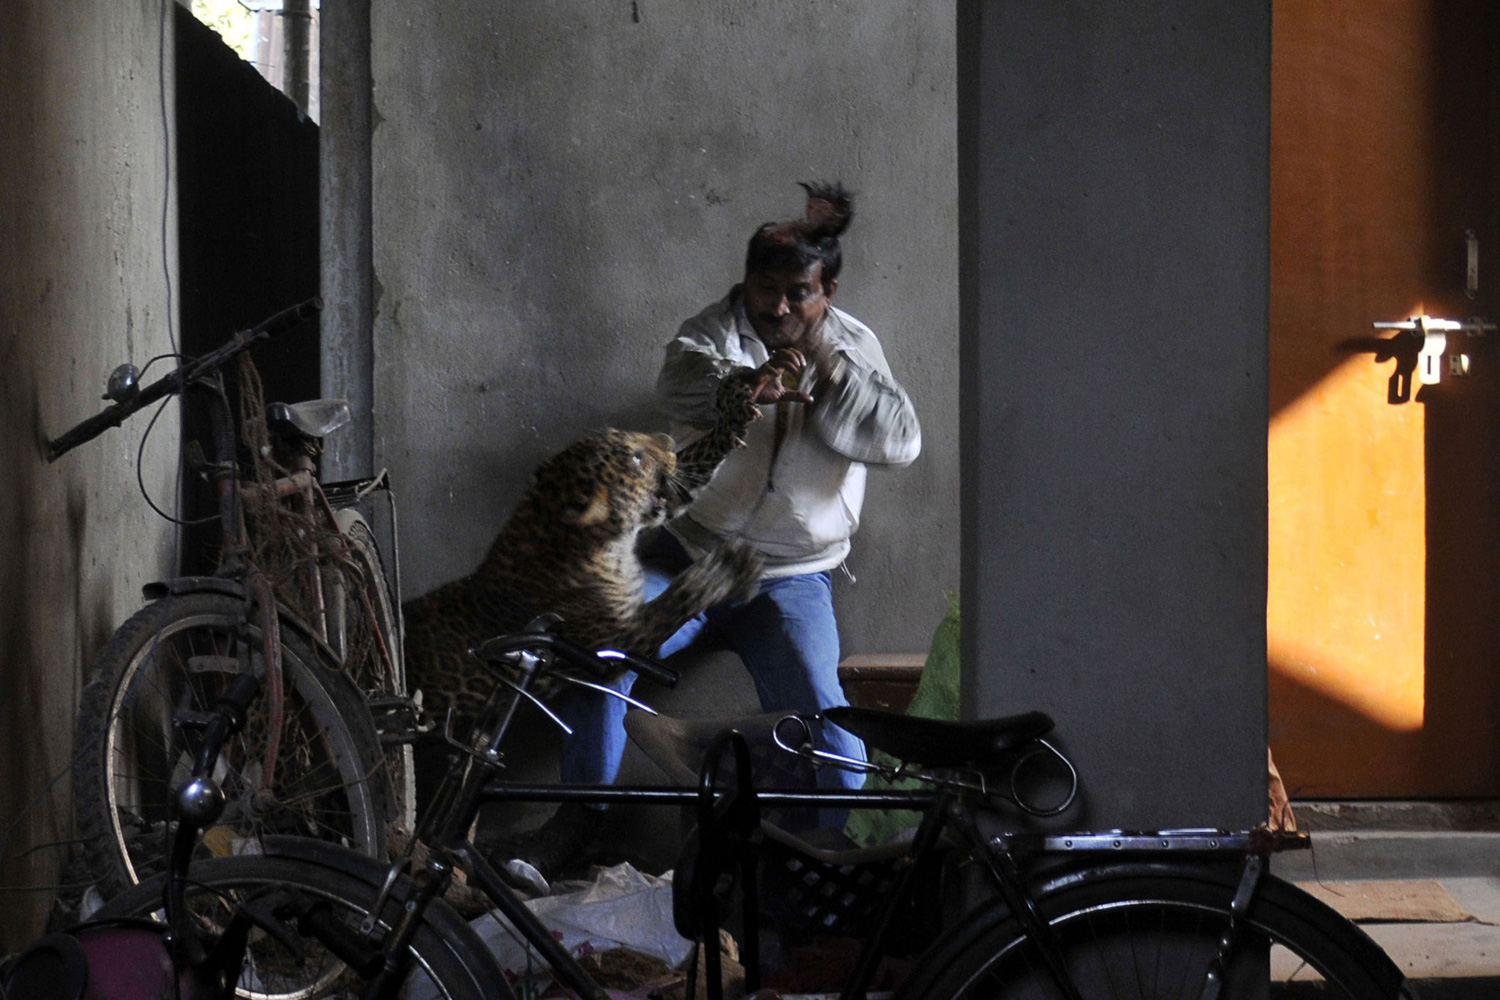 January 7, 2012. A leopard attacks and wounds a Pintu Deyan, an Indian labourer in a residential neighborhood of Silphukhuri area in Guwahati. Three people were seriously injured in the leopard attack before the feline was tranquilized and taken to Assam state zoo.